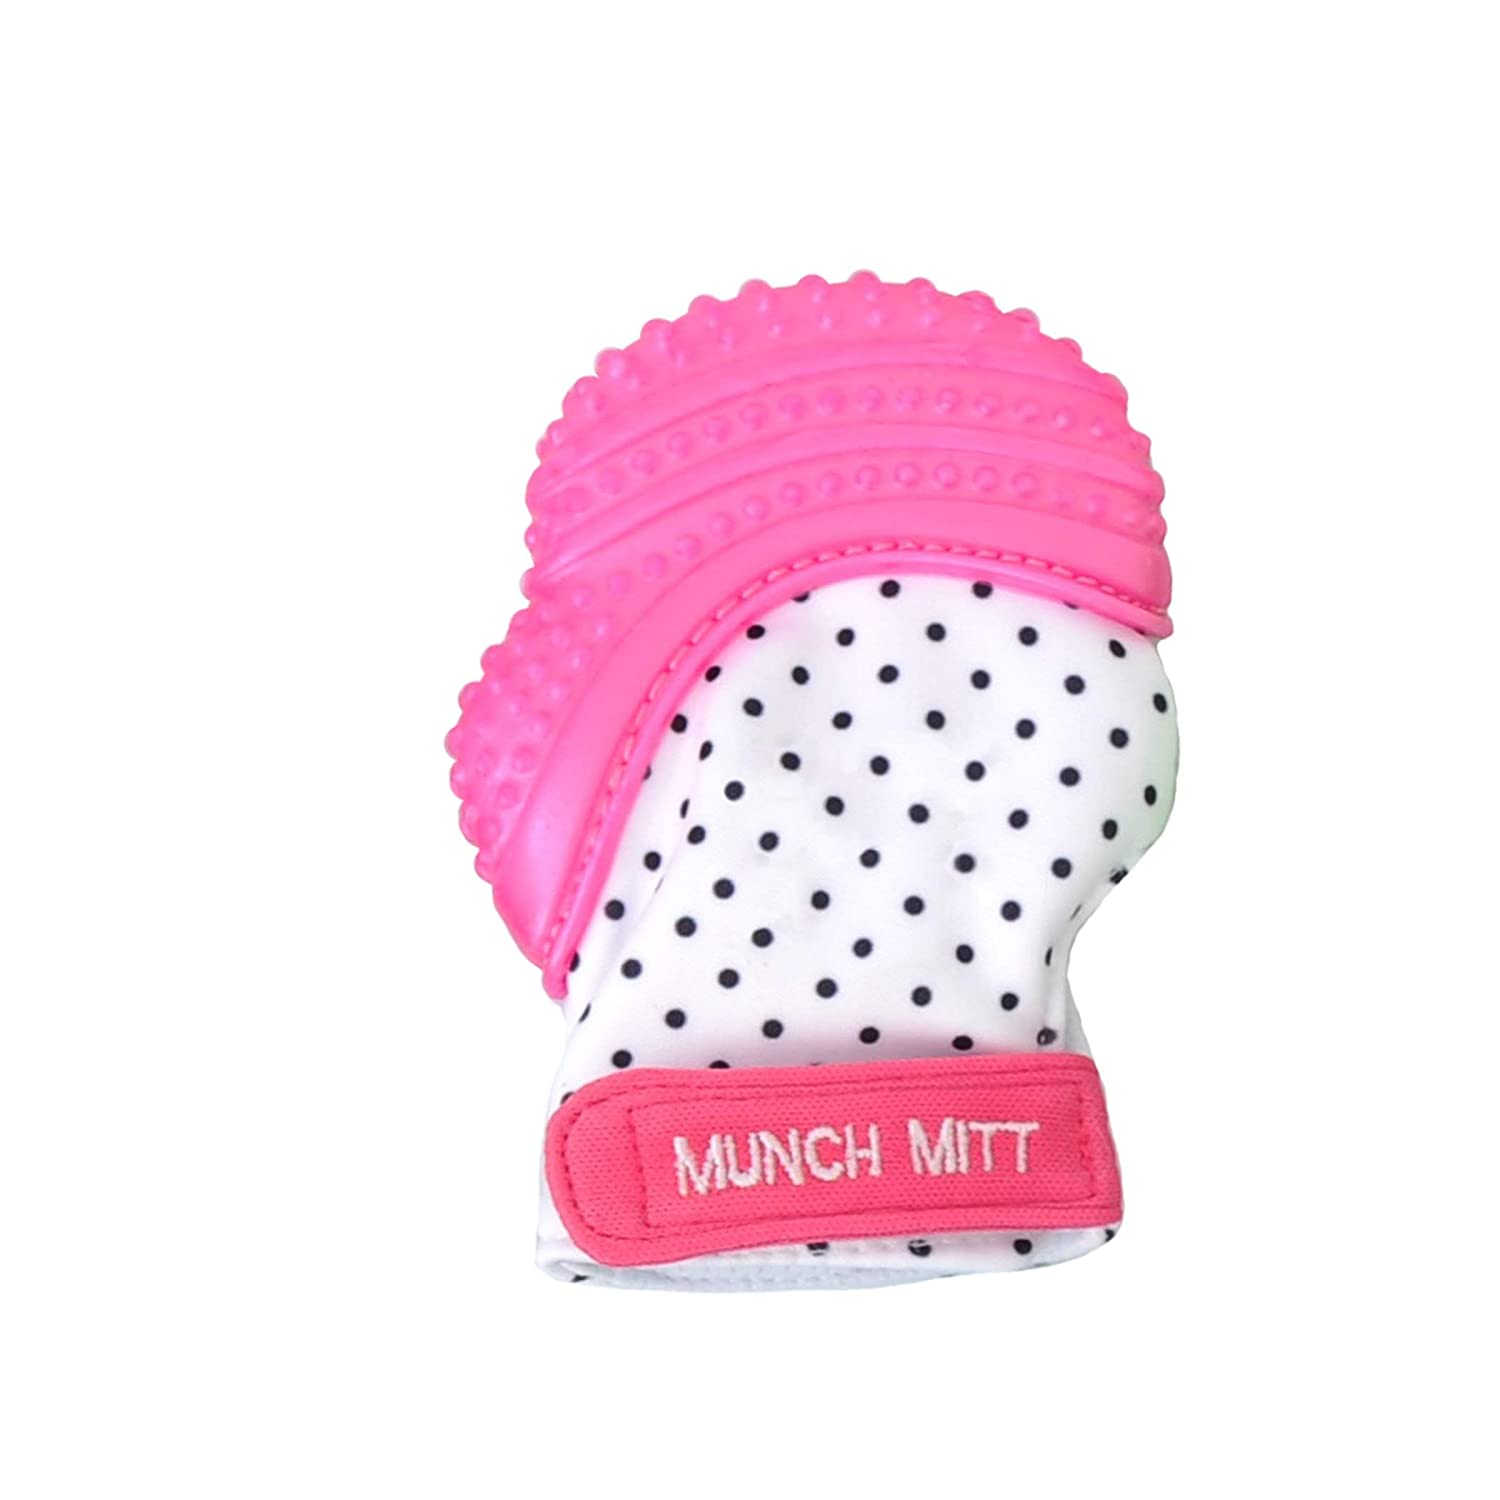 d53280790 Munch Mitt Teething Mitten - The Origianl Mom-Invented Silicone Teether  Mitten with Travel Bag – Ideal Teething Toys for Baby Shower Gift - Pink ...